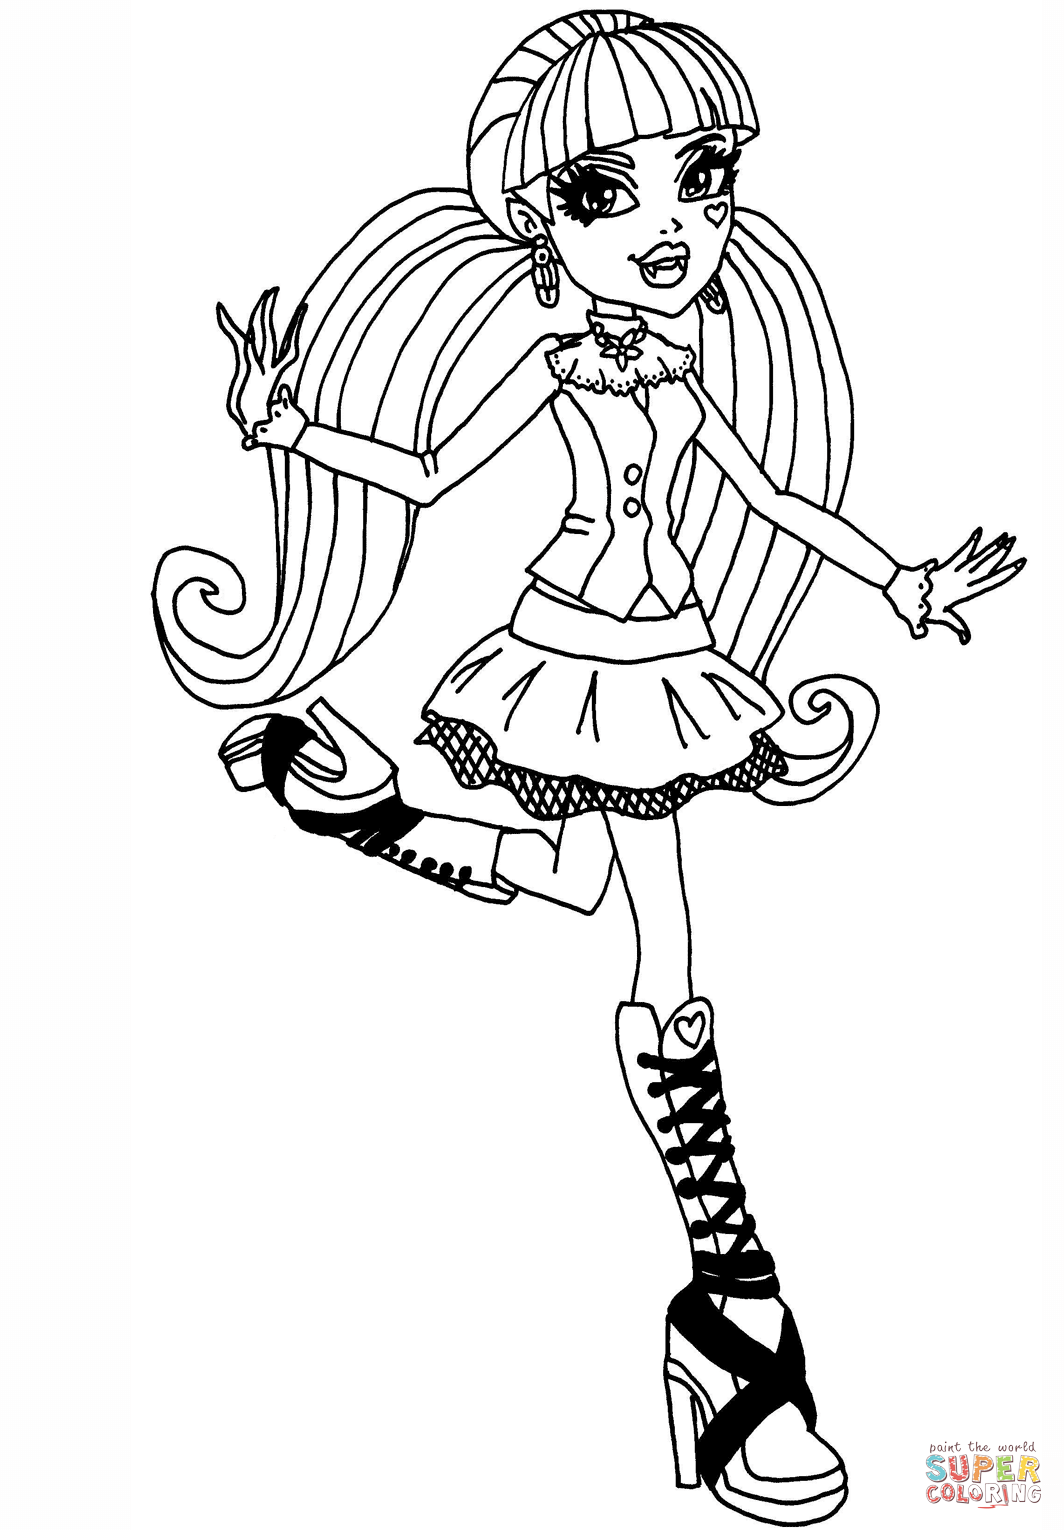 monster high coloring games monster high catty noir coloring page free printable games high coloring monster